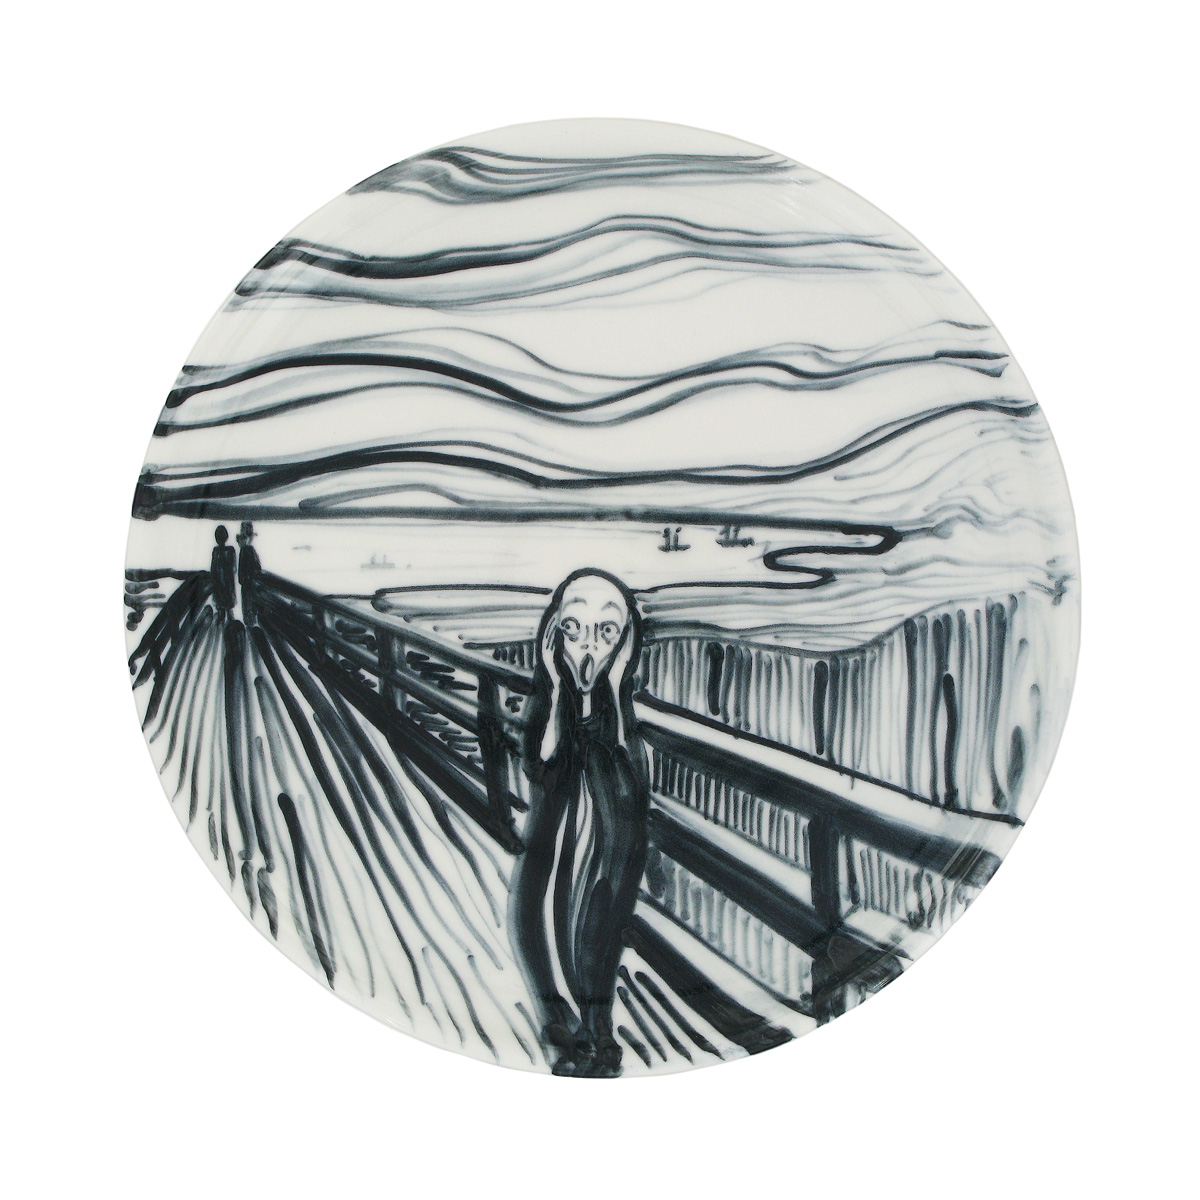 The Scream Plate